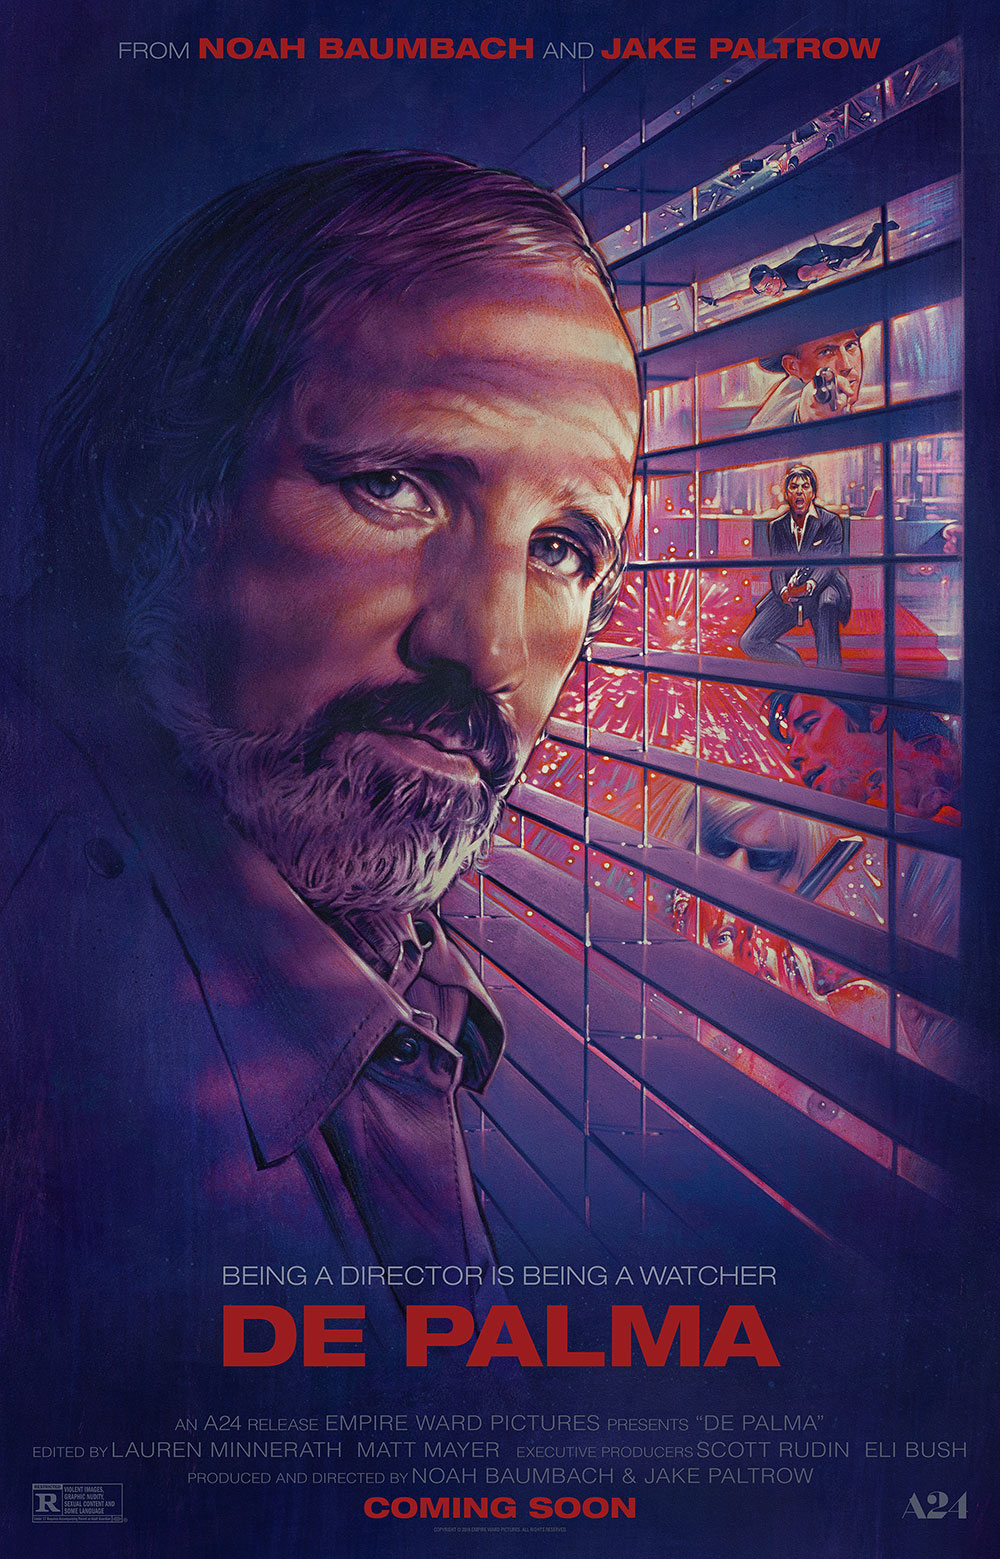 De Palma poster, designed by BLT Communications with artwork by Steven Chorney